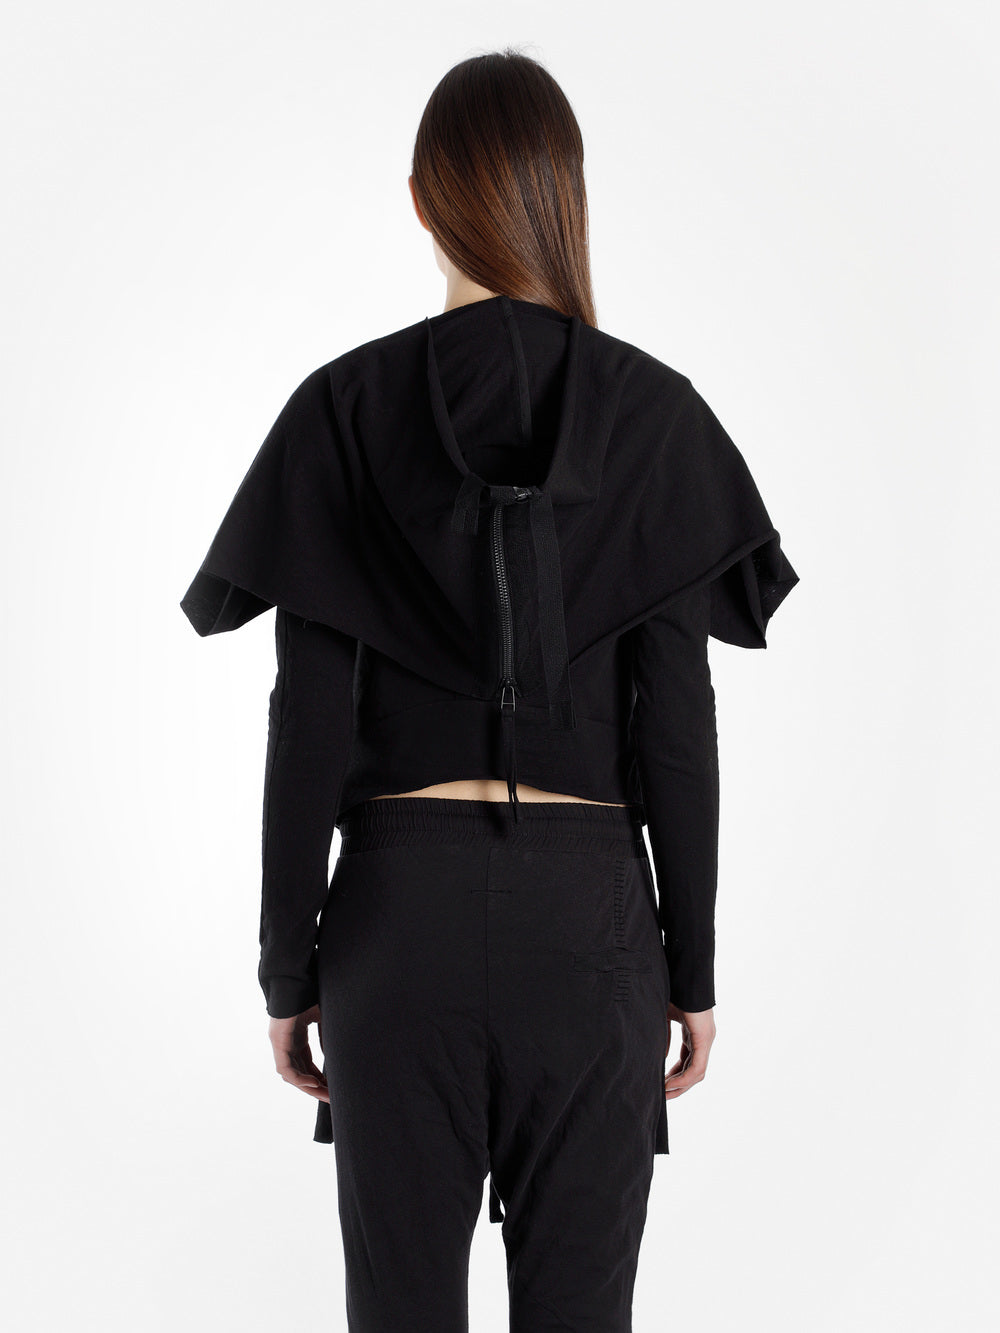 Women's Black Jacket With Panel - Cut out Bottom Zip Closure